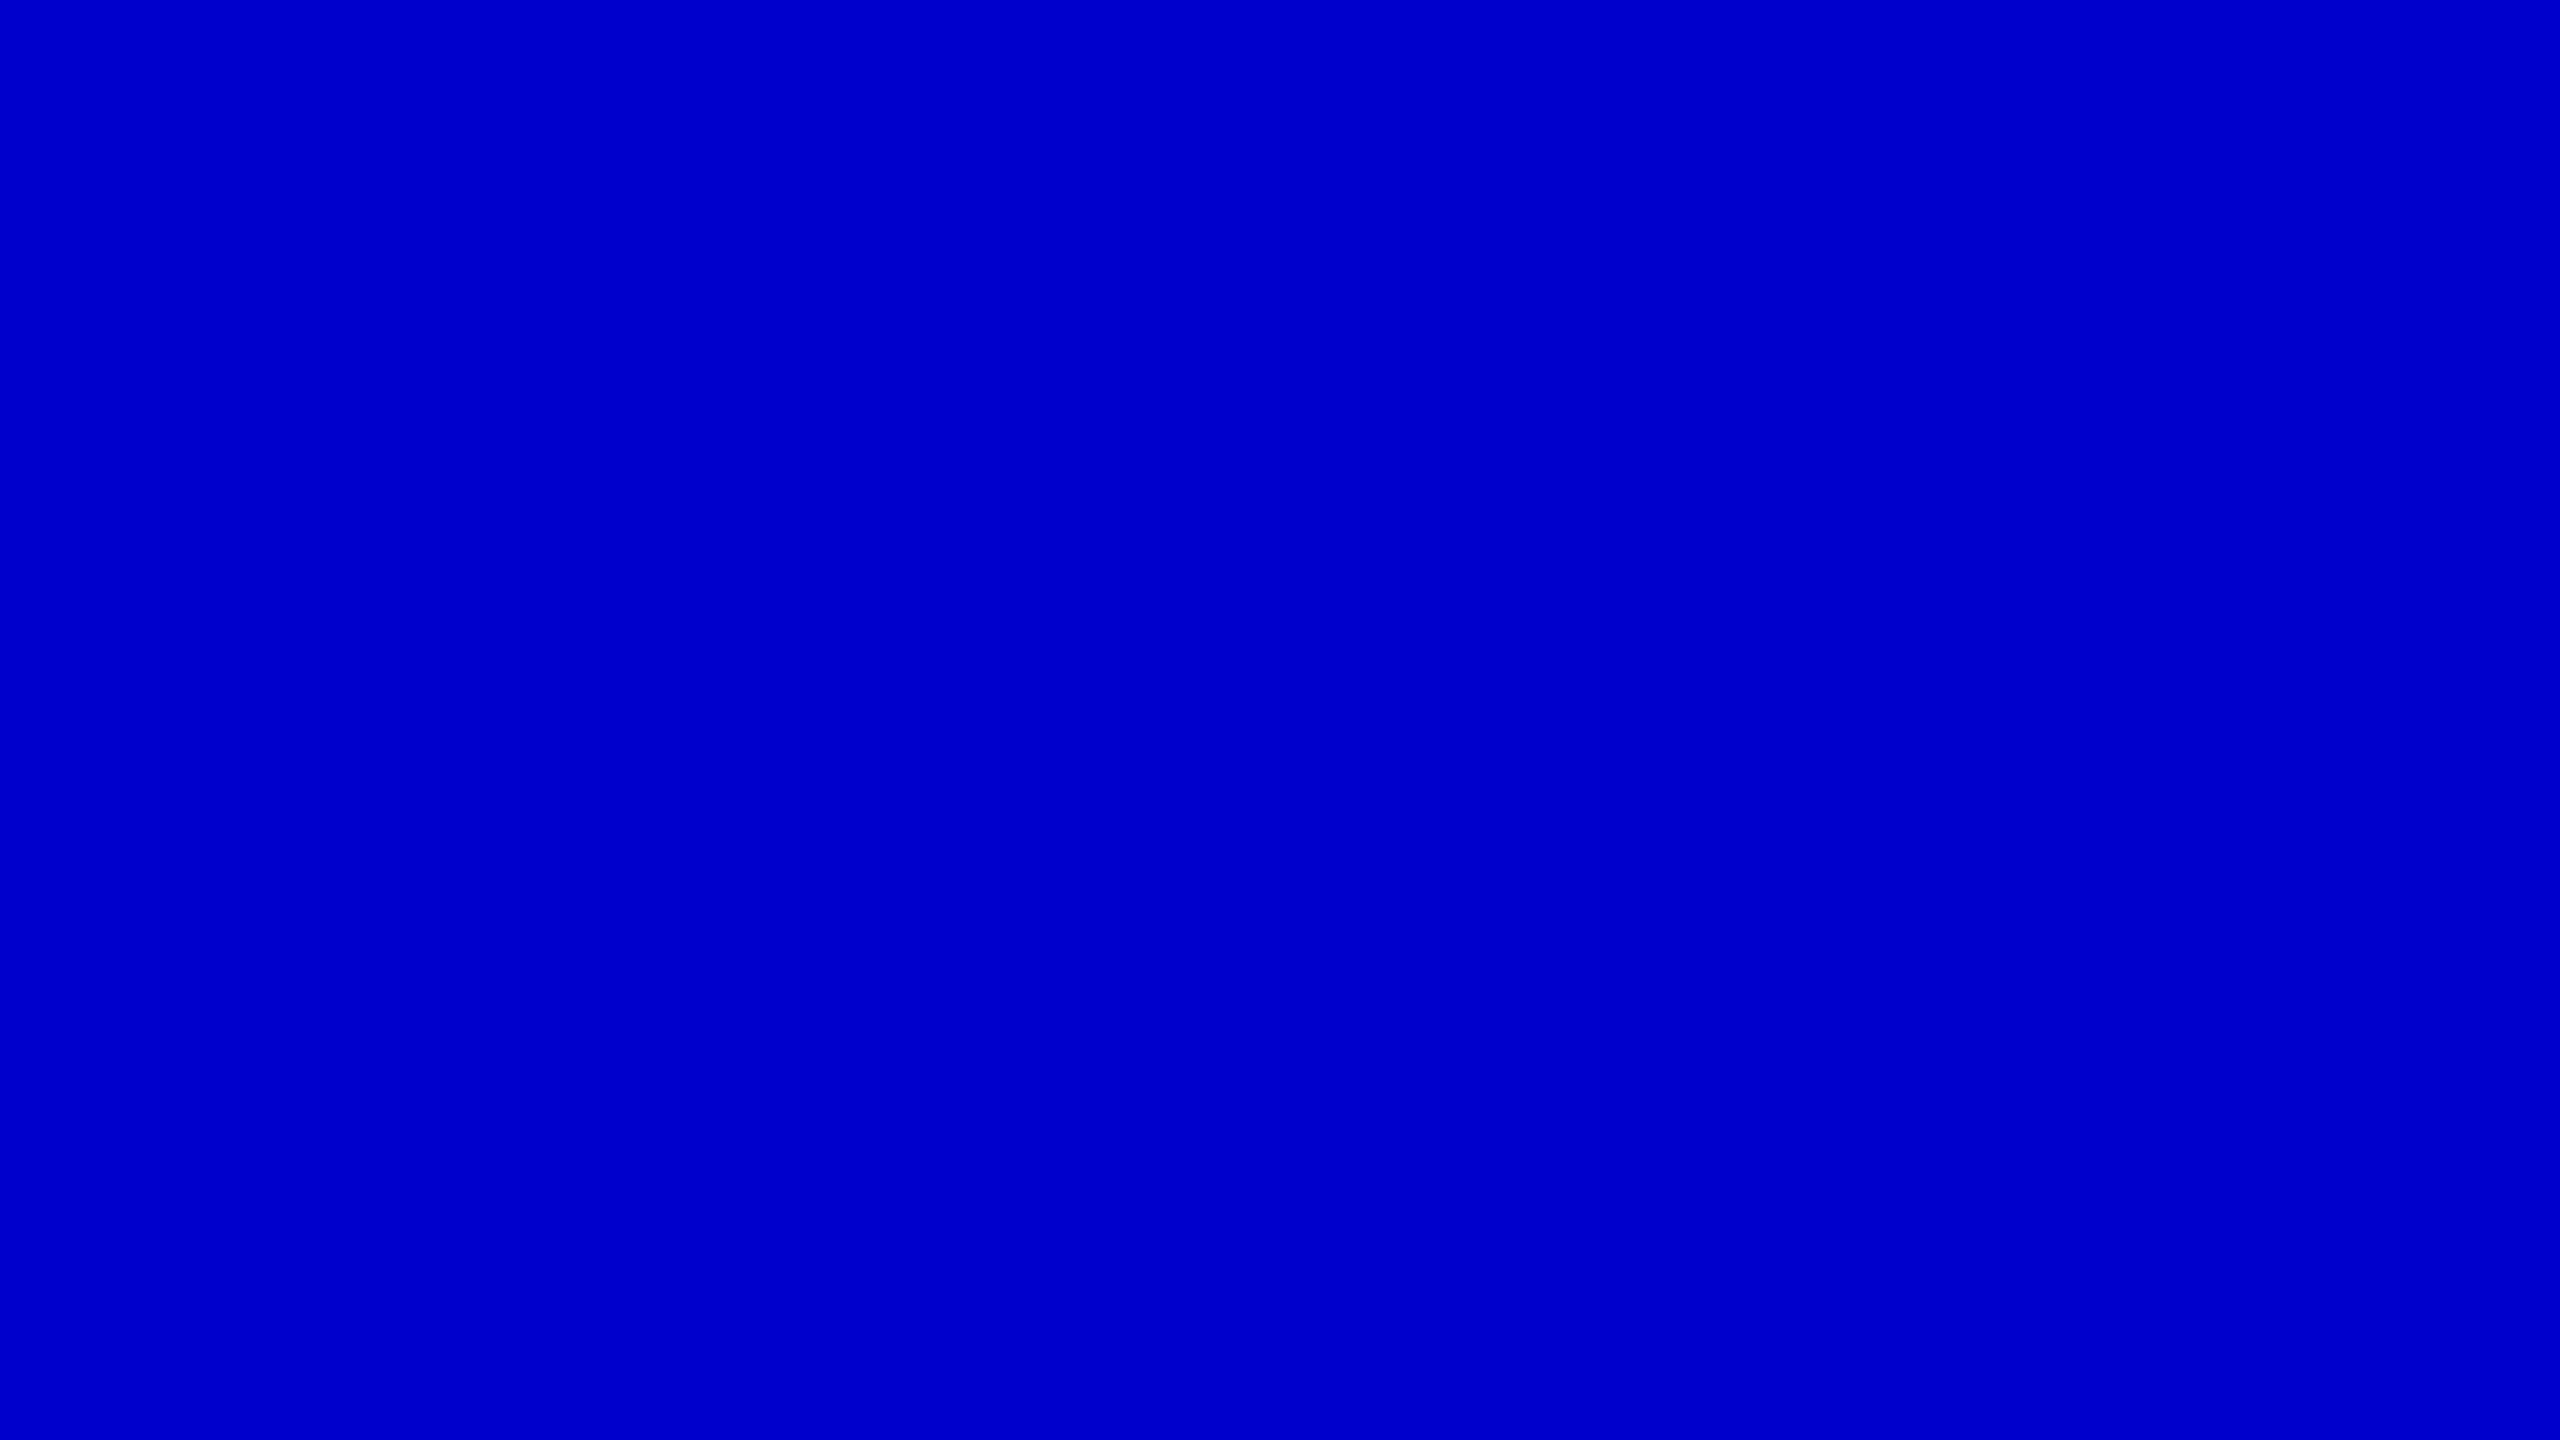 2560x1440 Medium Blue Solid Color Background